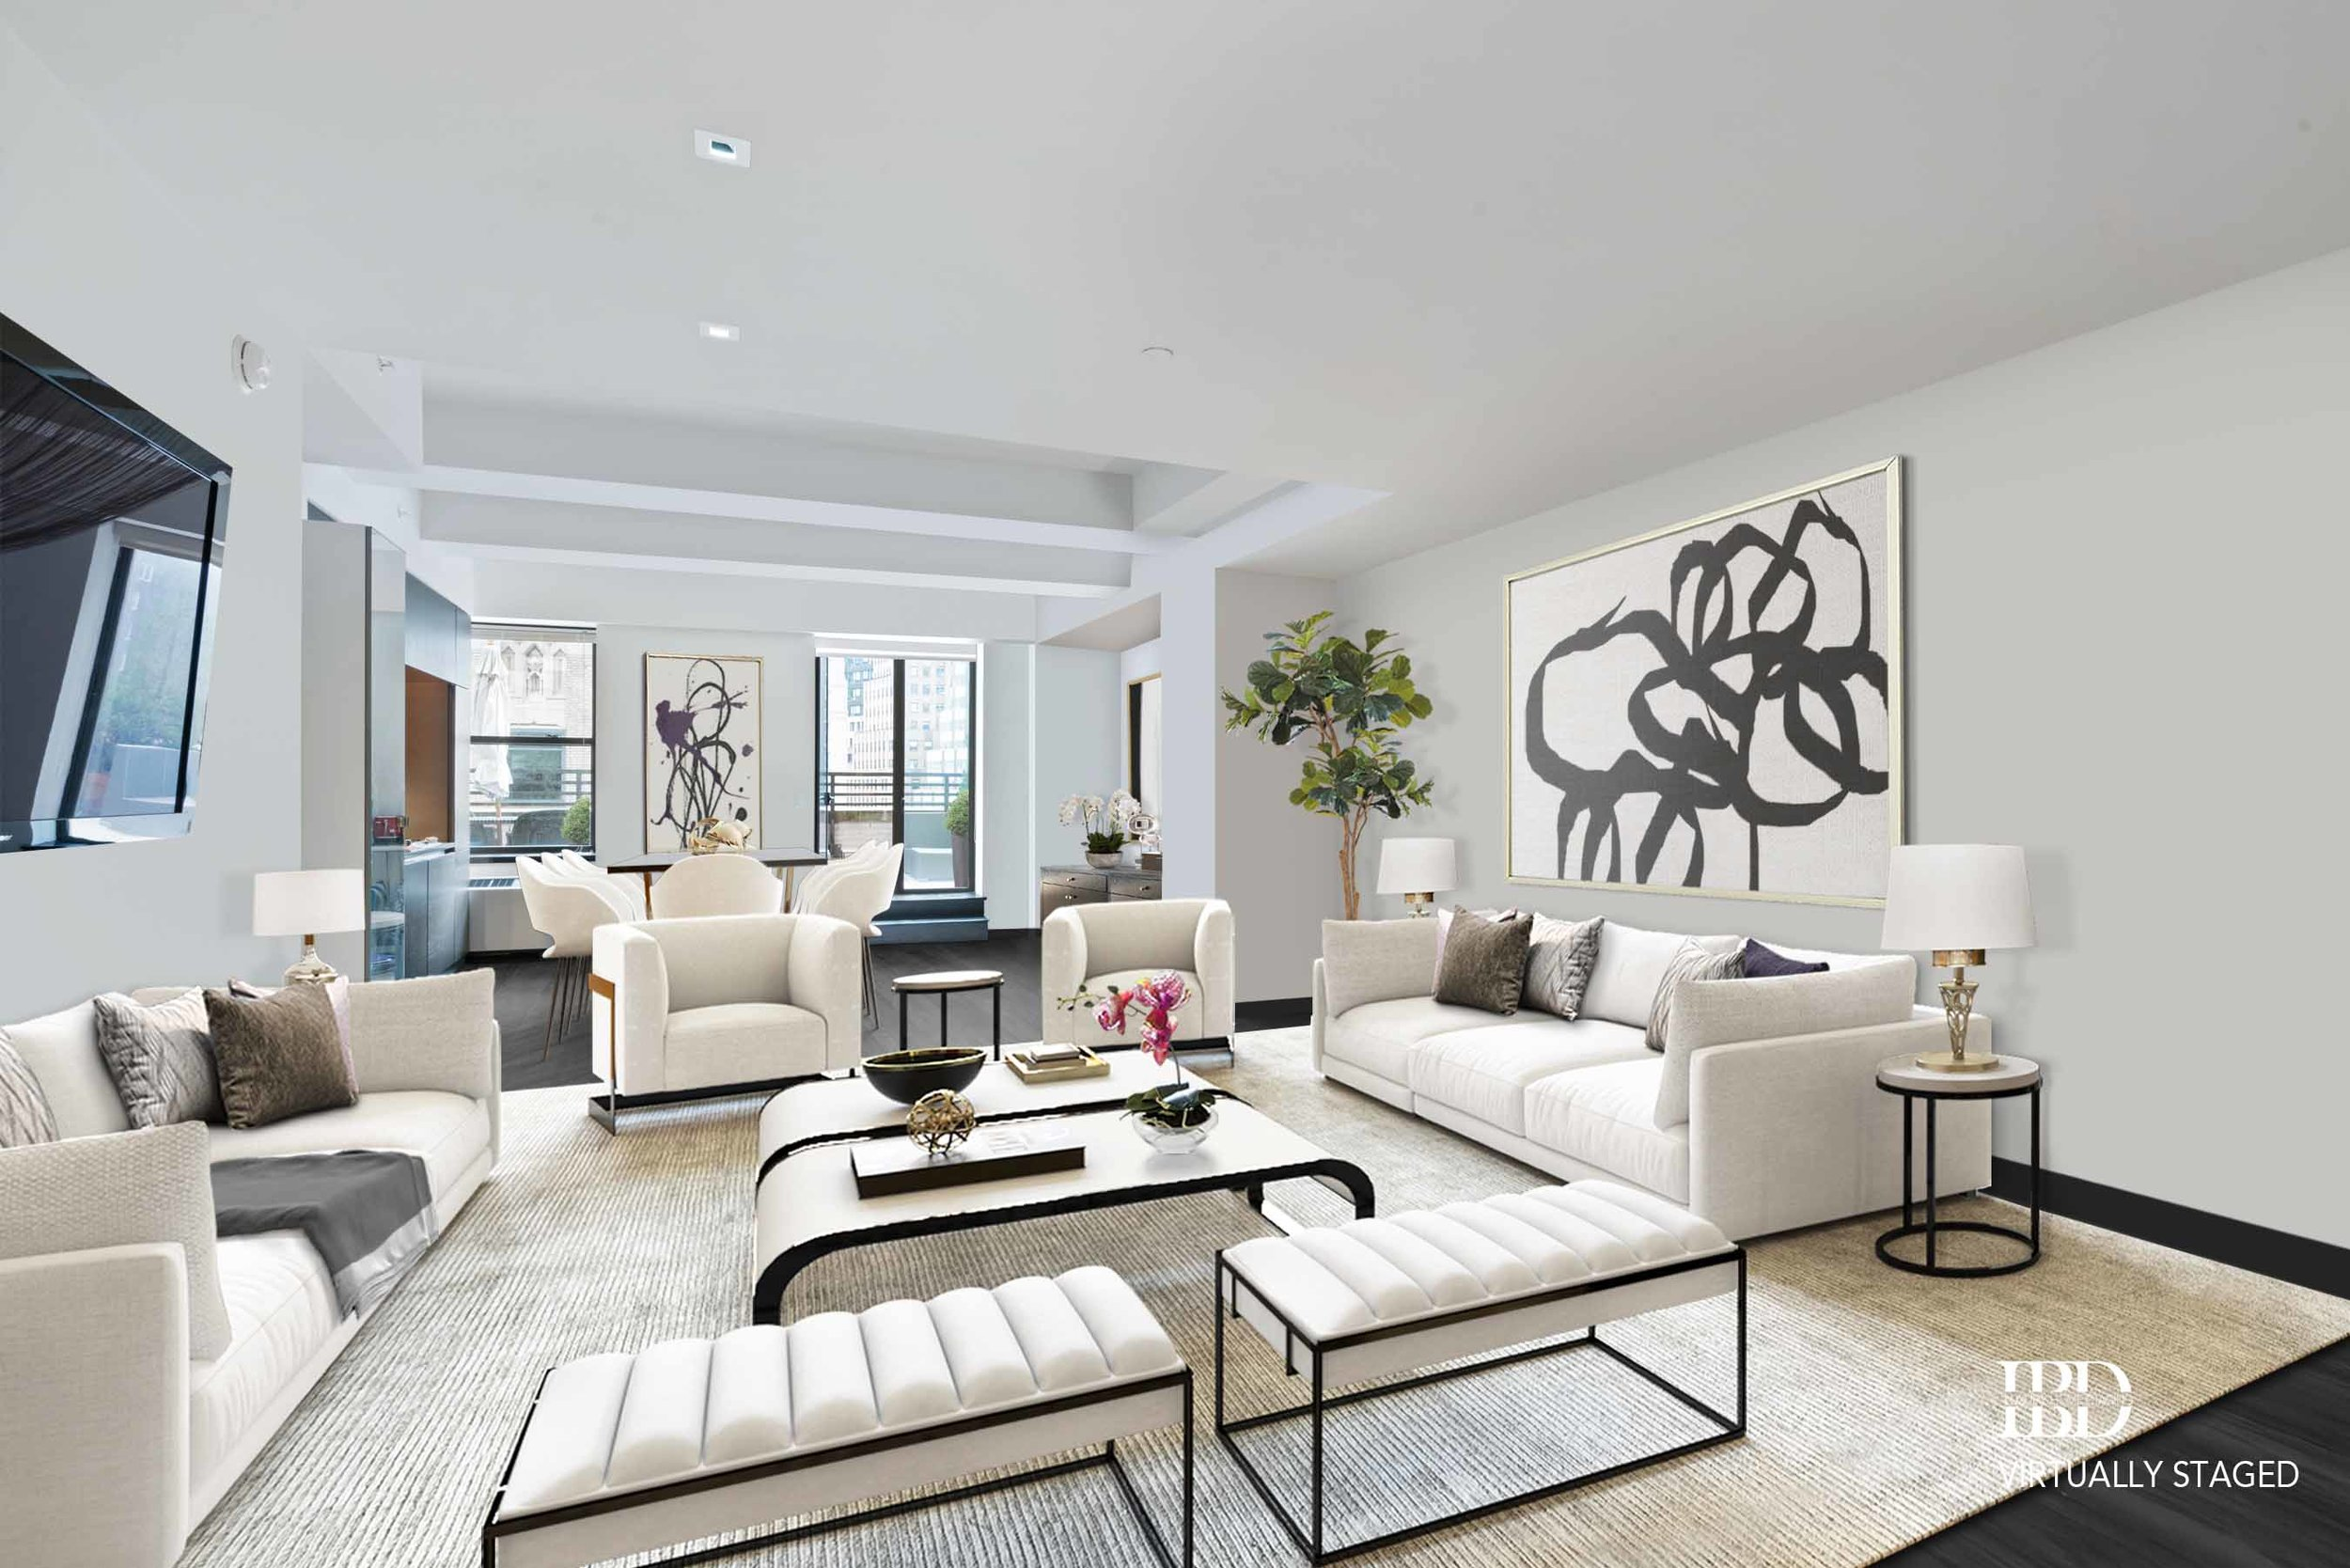 IN CONTRACT IN 3 WEEKS - NOW SOLD - NEW YORK CITY, NY